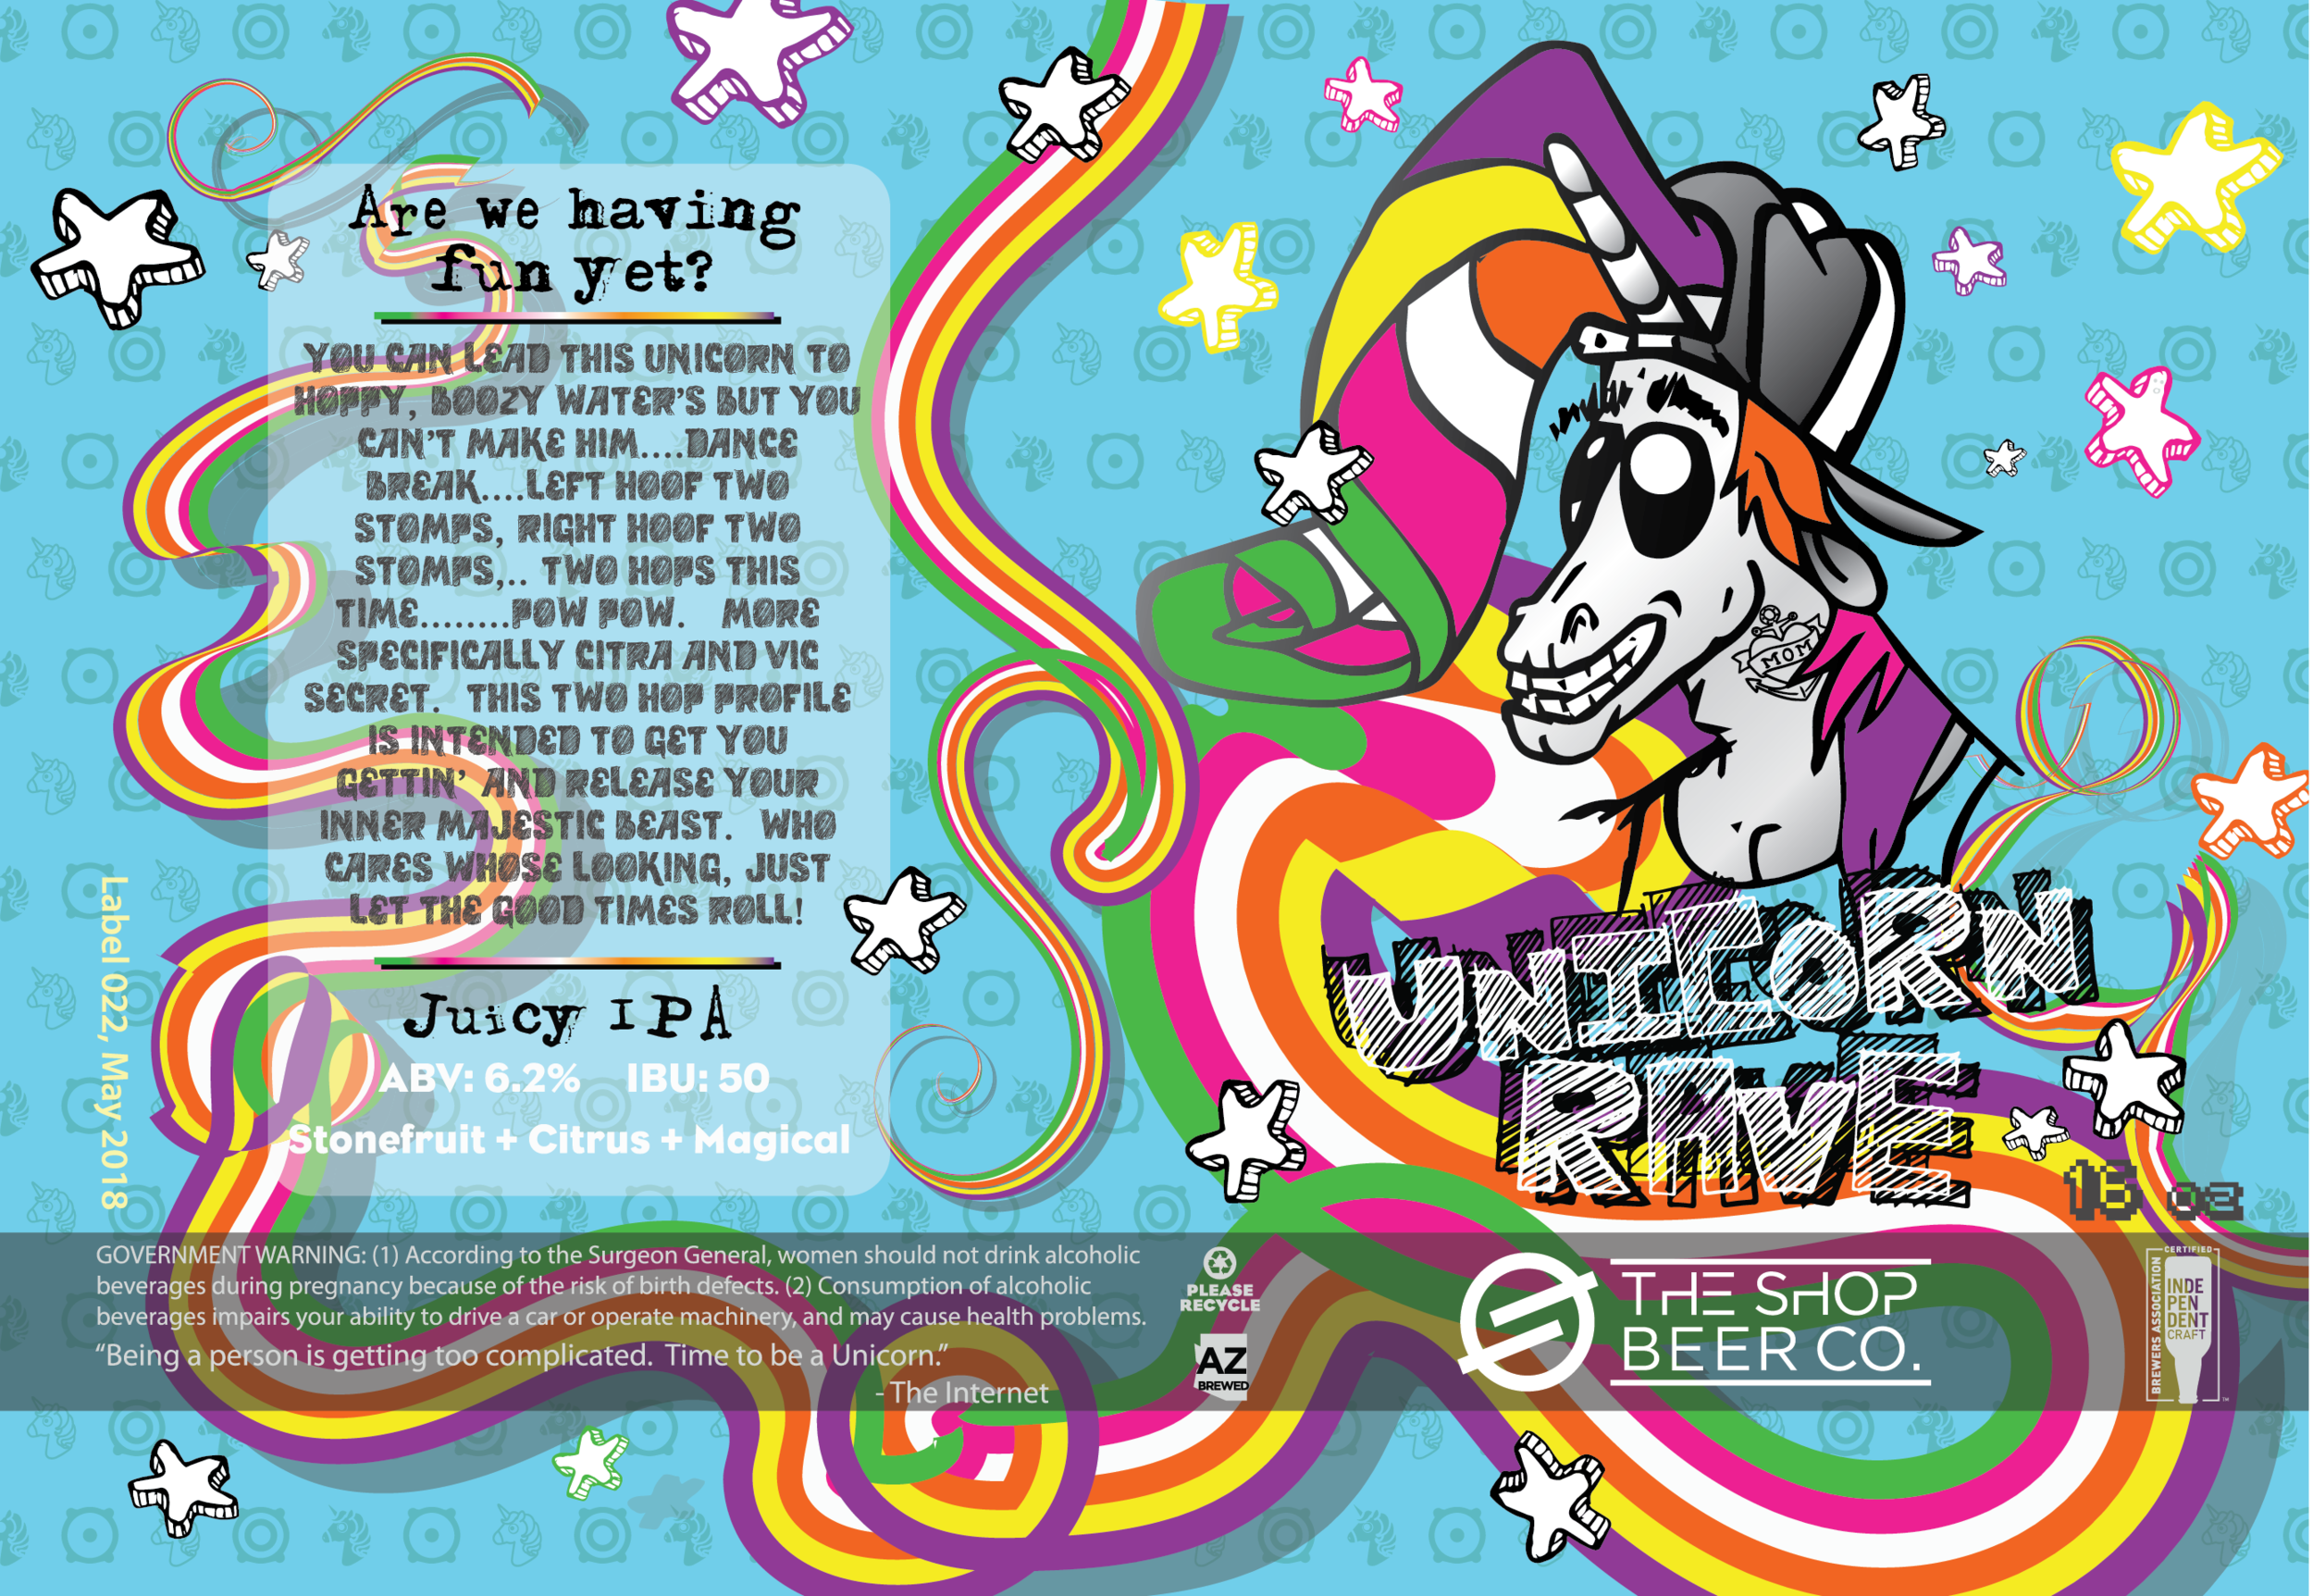 Unicorn Rave_Website_Label-01.png